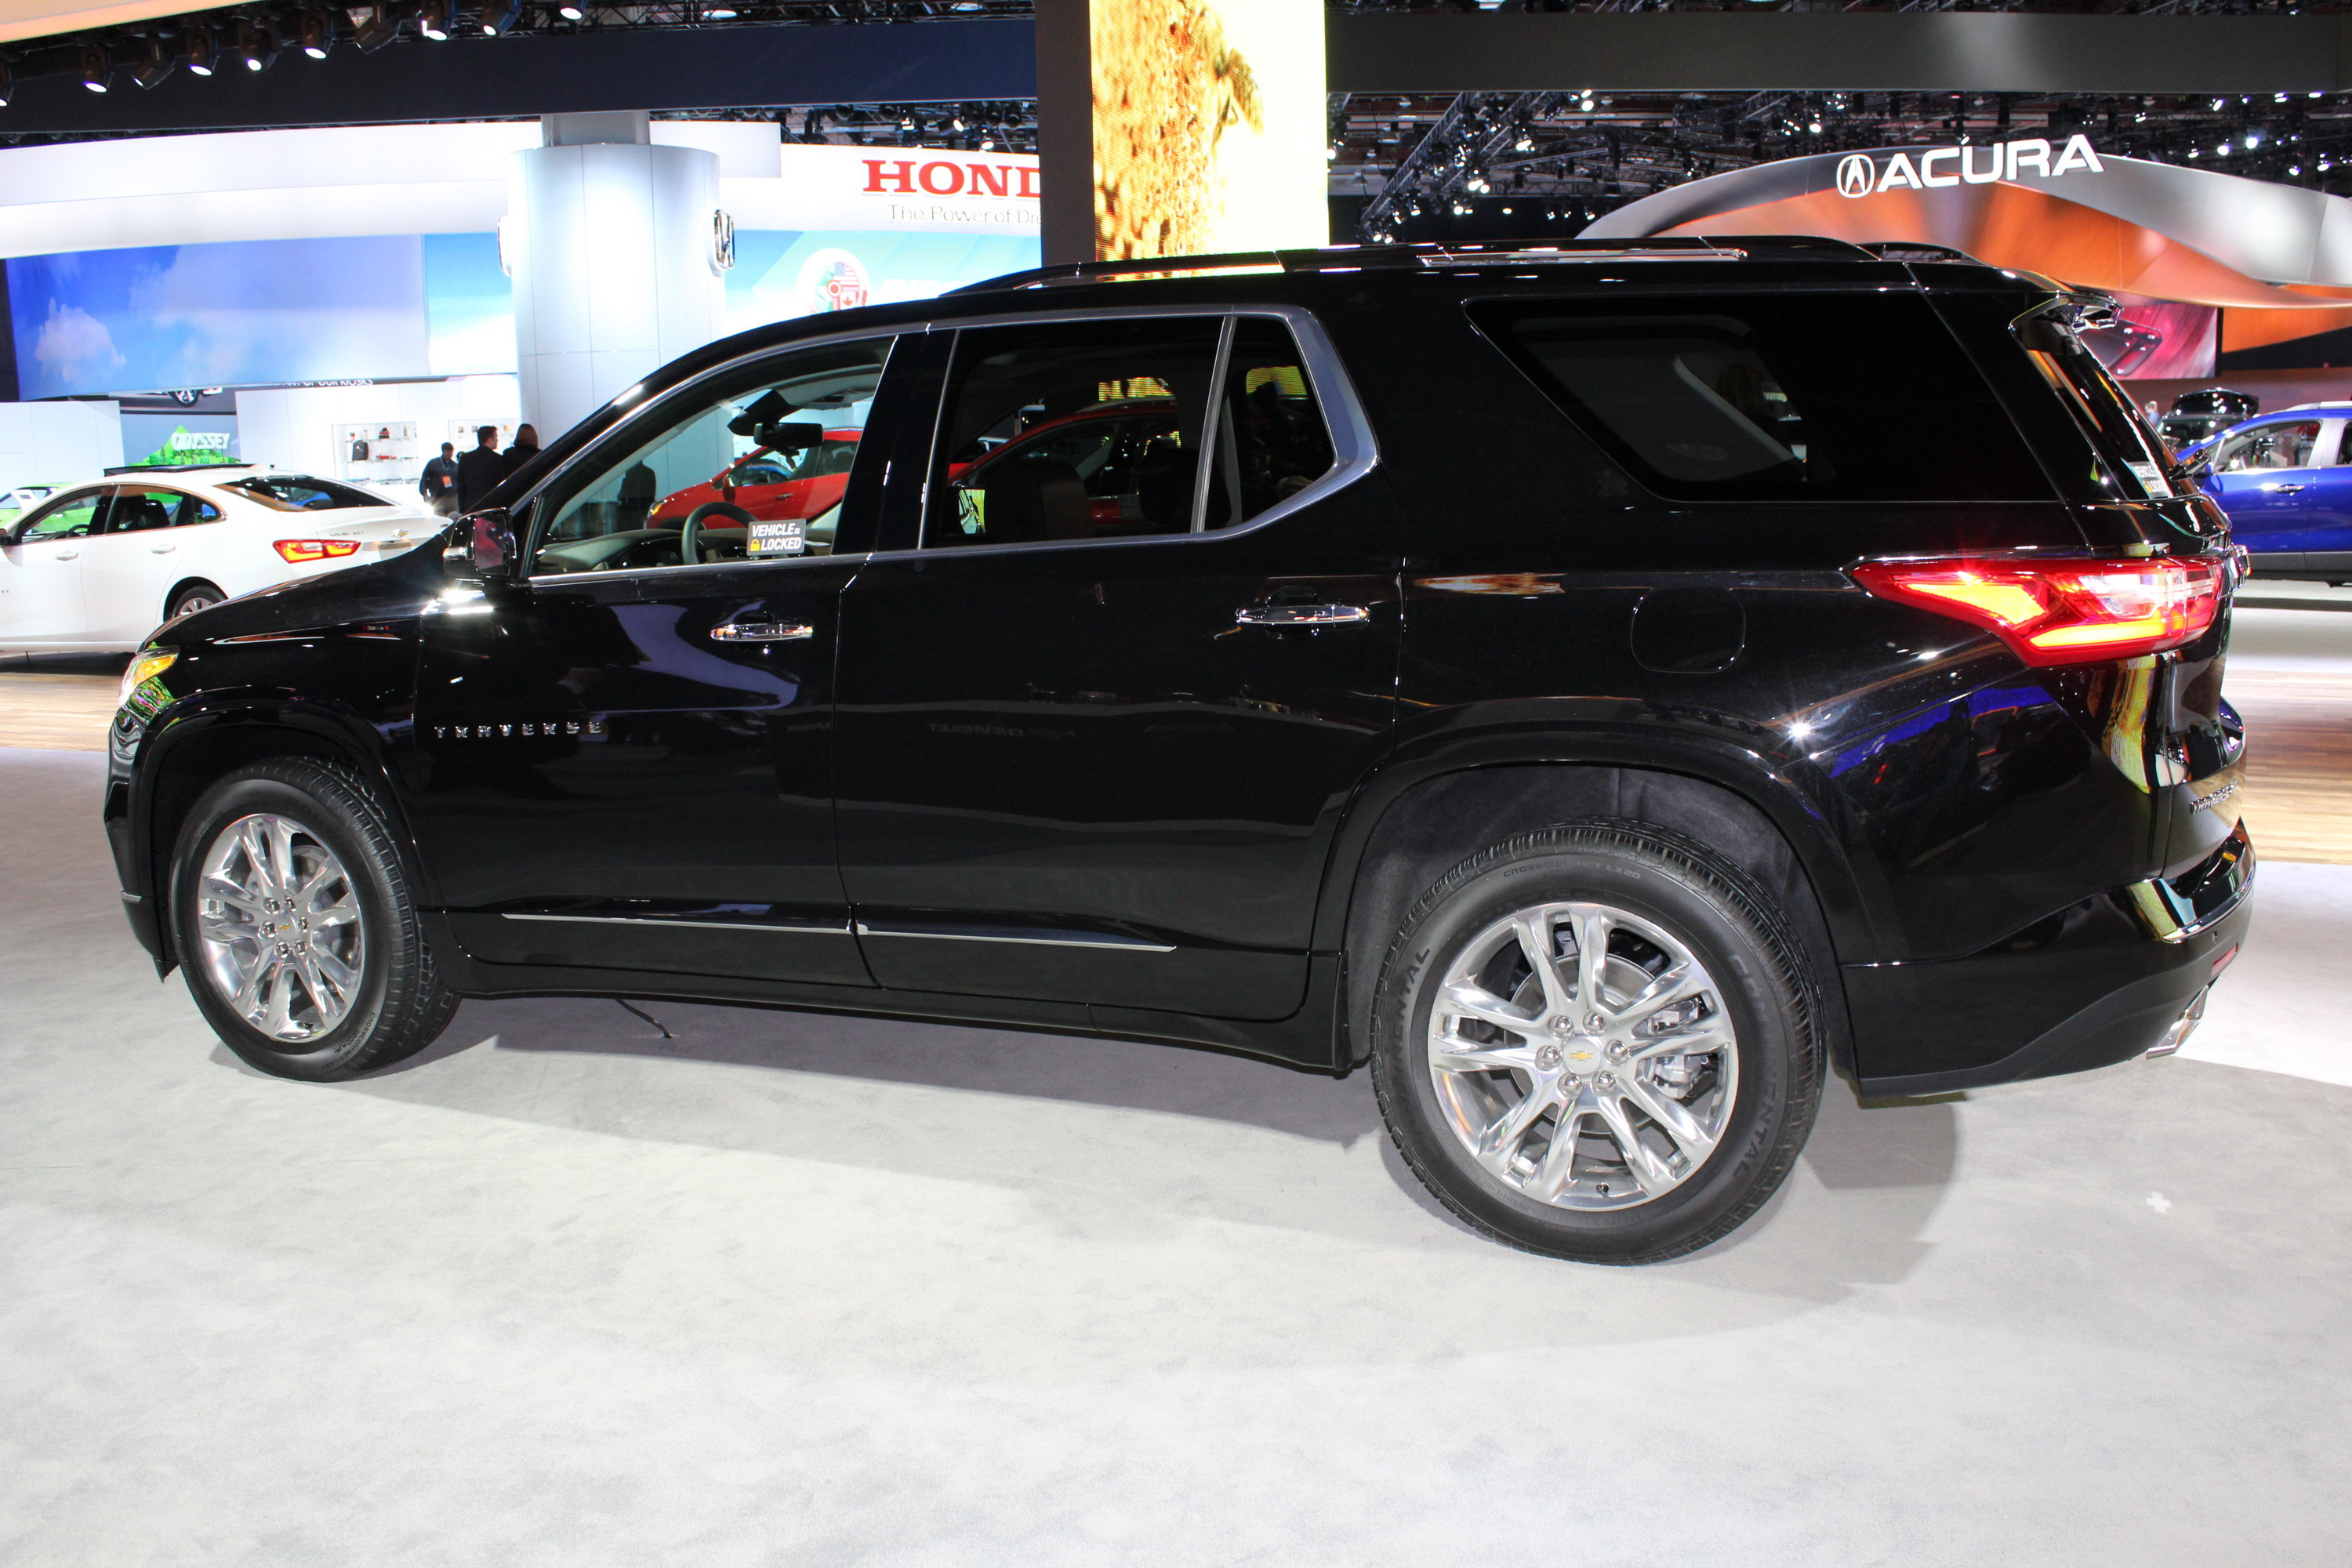 2018 Chevy Traverse >> 2018 Chevrolet Traverse Review - Top Speed